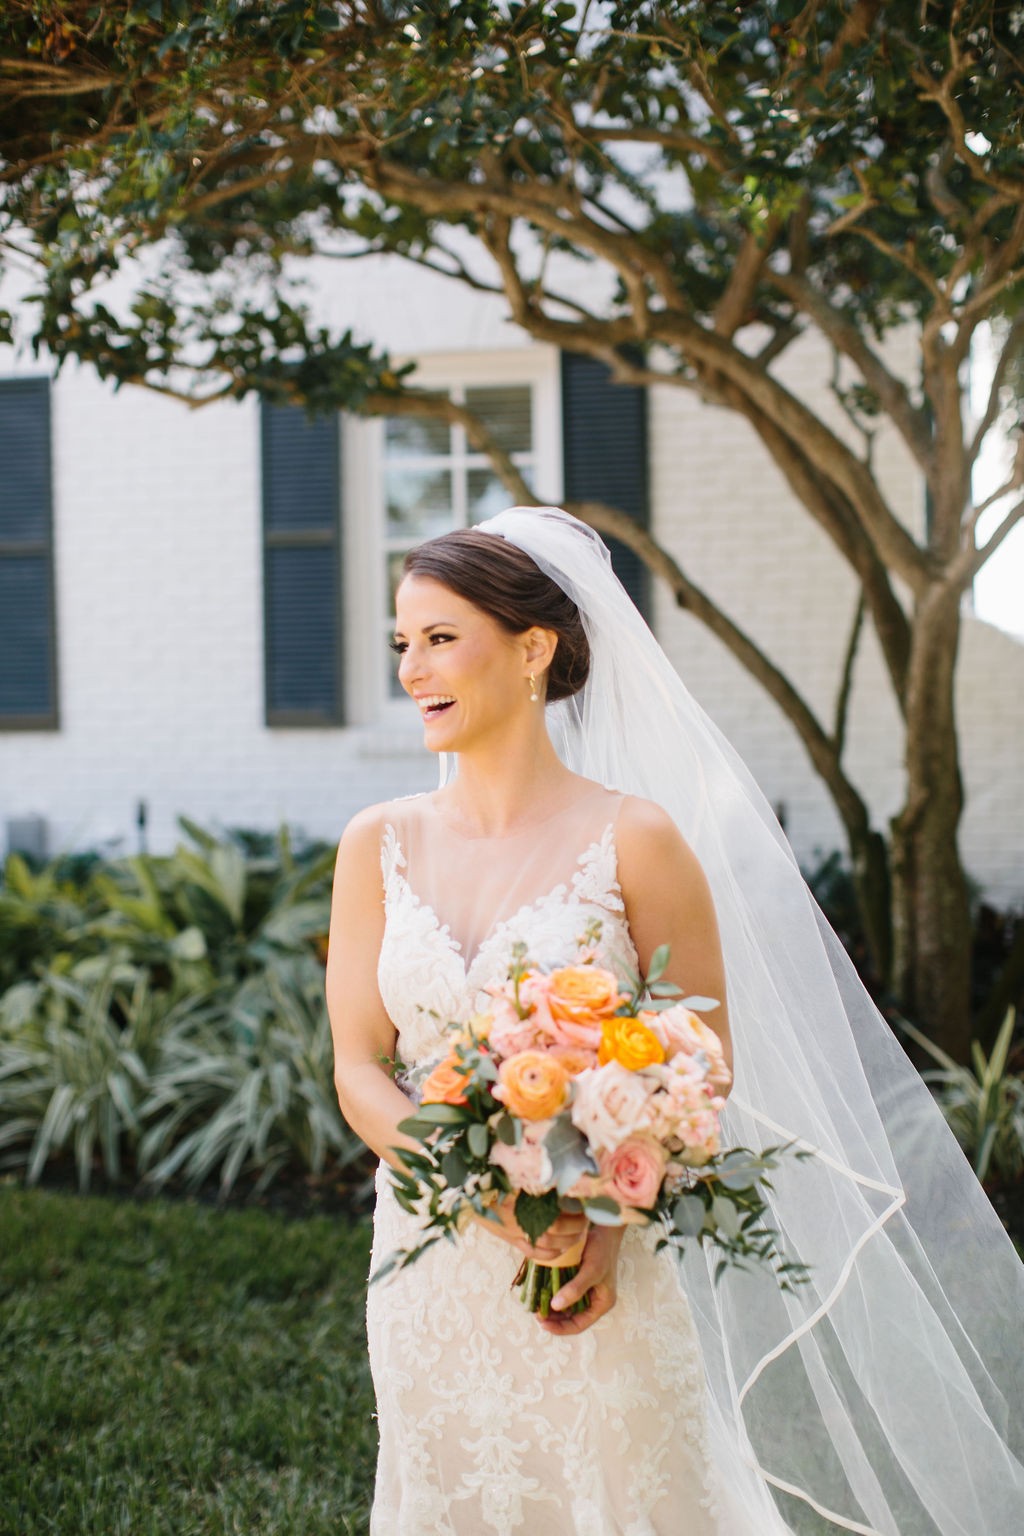 Romantic Florida Bride Beauty Portrait Wearing Lace and Illusion Neckline Watters Wedding Dress with Full Length Veil Holding Whimsical Orange and Blush Pink Roses, Dusty Miller Leaves, Eucalyptus Floral Bridal Bouquet | Tampa Bay Wedding Florist Bruce Wayne Florals | St. Pete Wedding Hair and Makeup Femme Akoi Beauty Studio